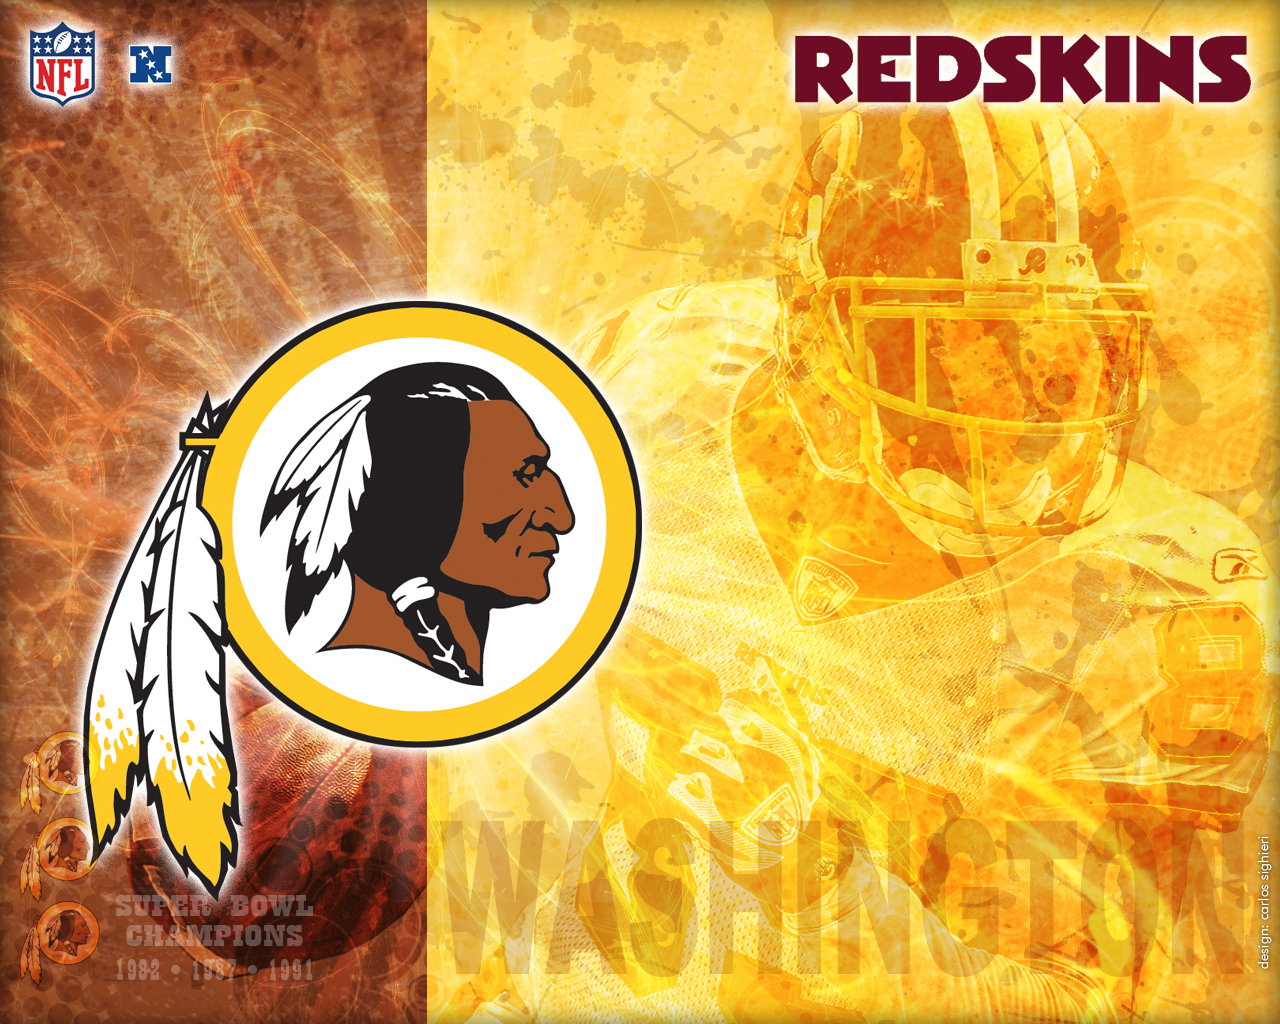 wallpaper washington redskins cas 1280x1024 photo 1280x1024